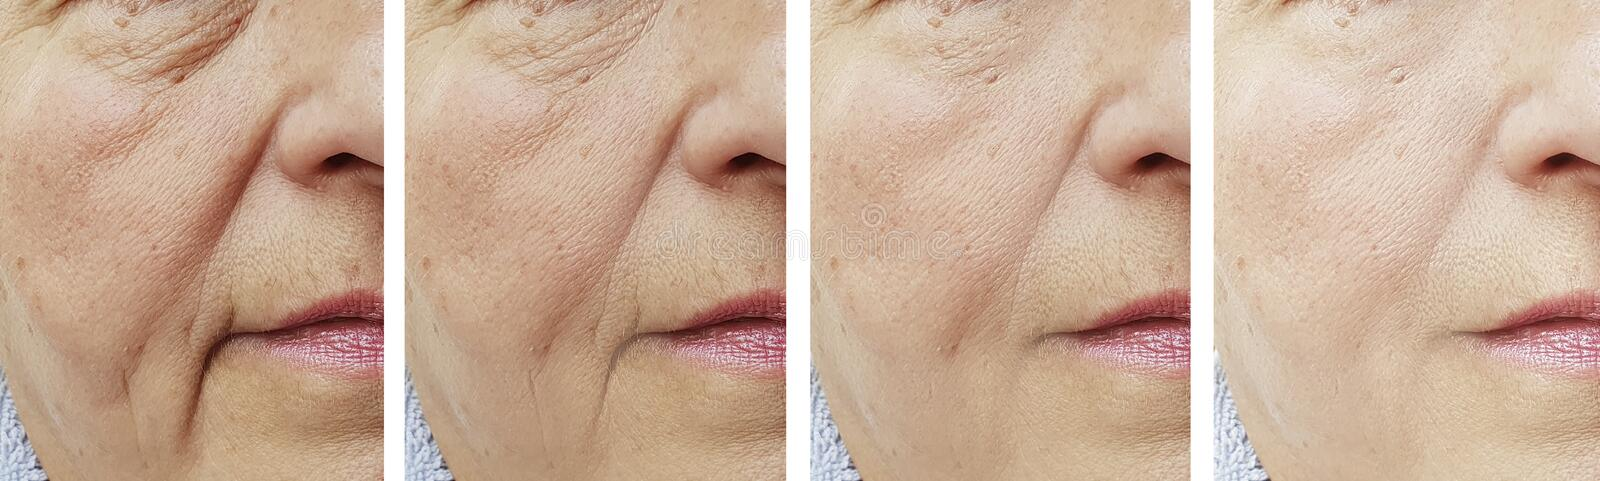 Elderly woman face wrinkles before  after treatment stock photo